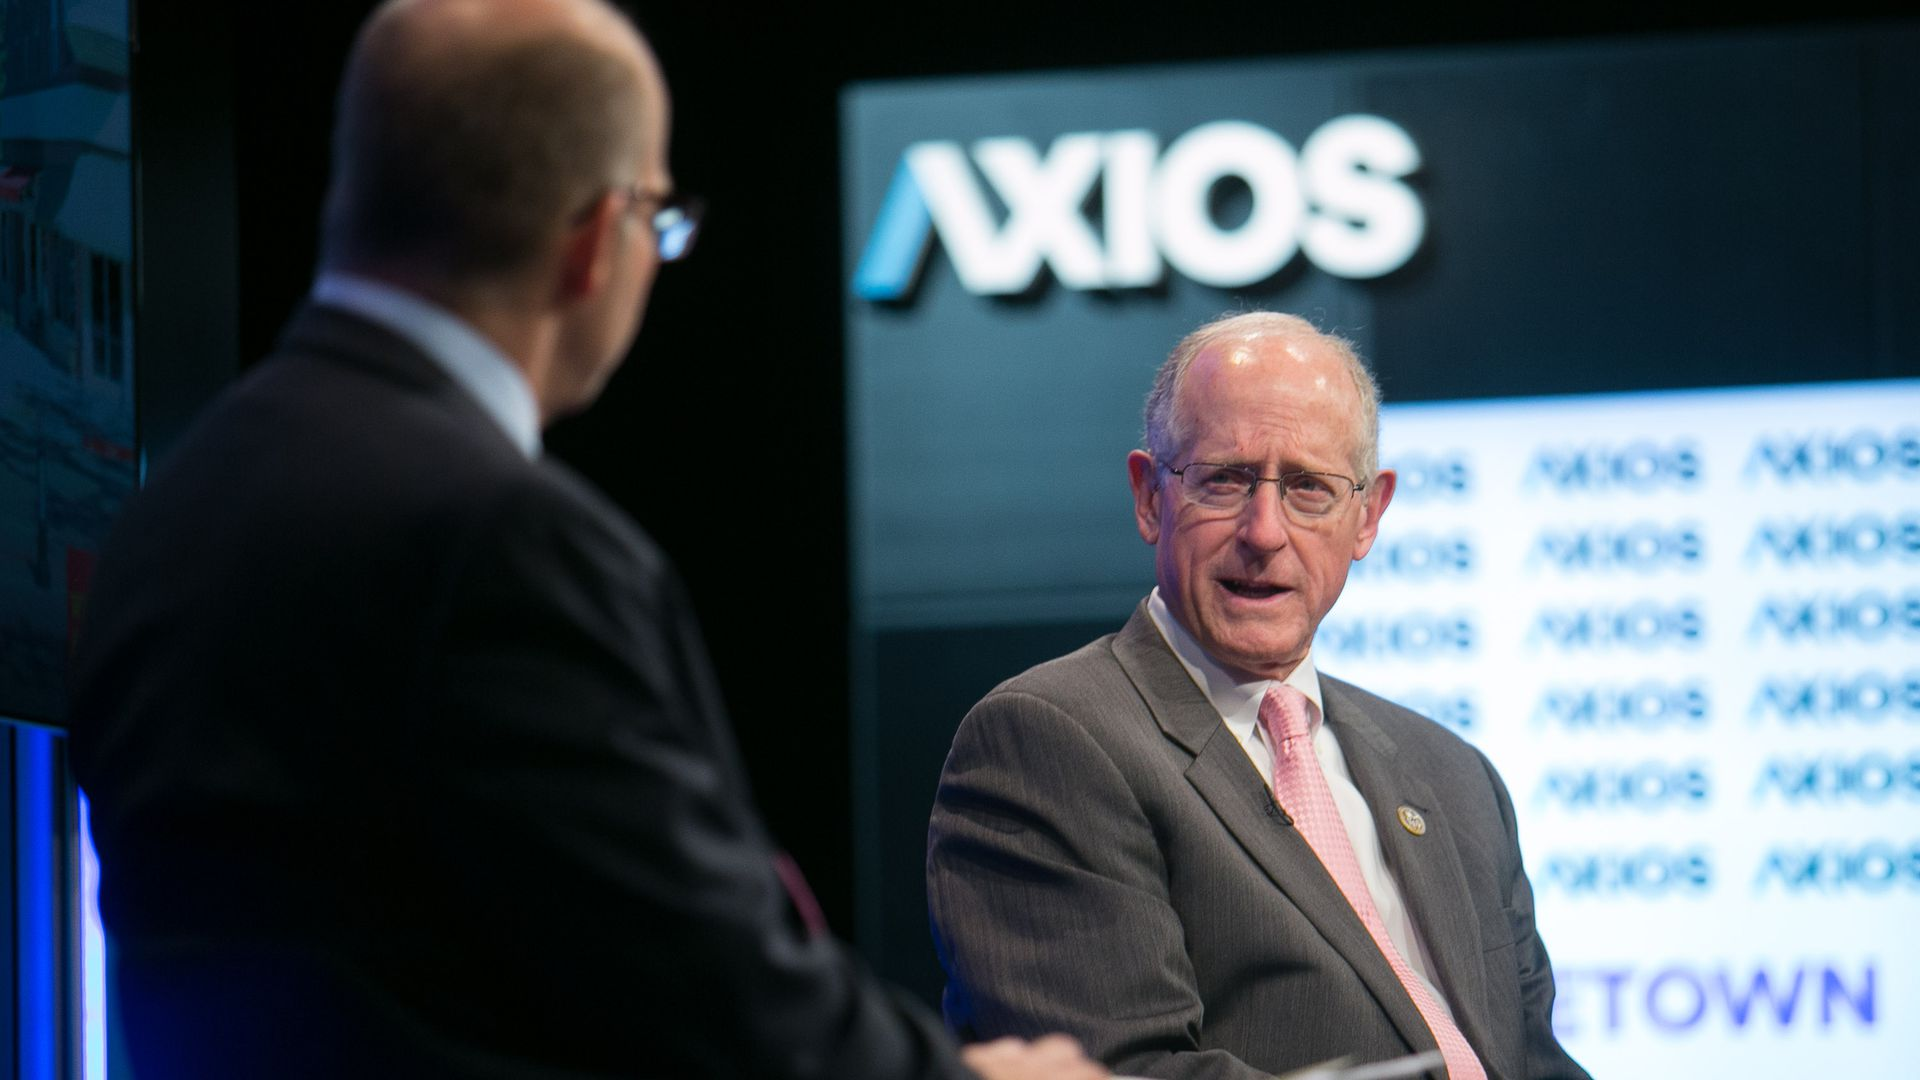 Rep. Mike Conaway at an Axios event